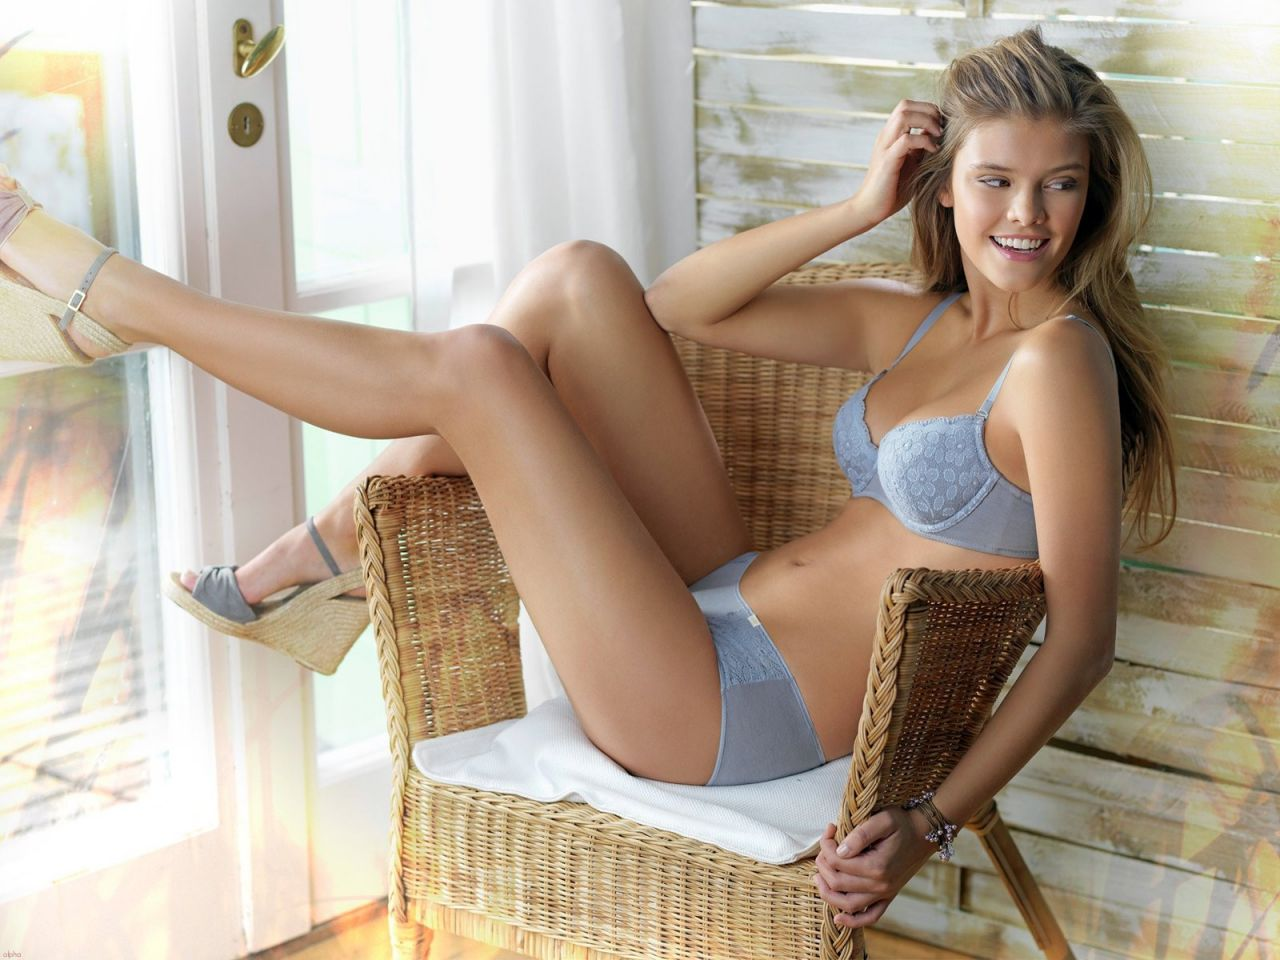 nina-agdal-hot-wallpapers-27-_1